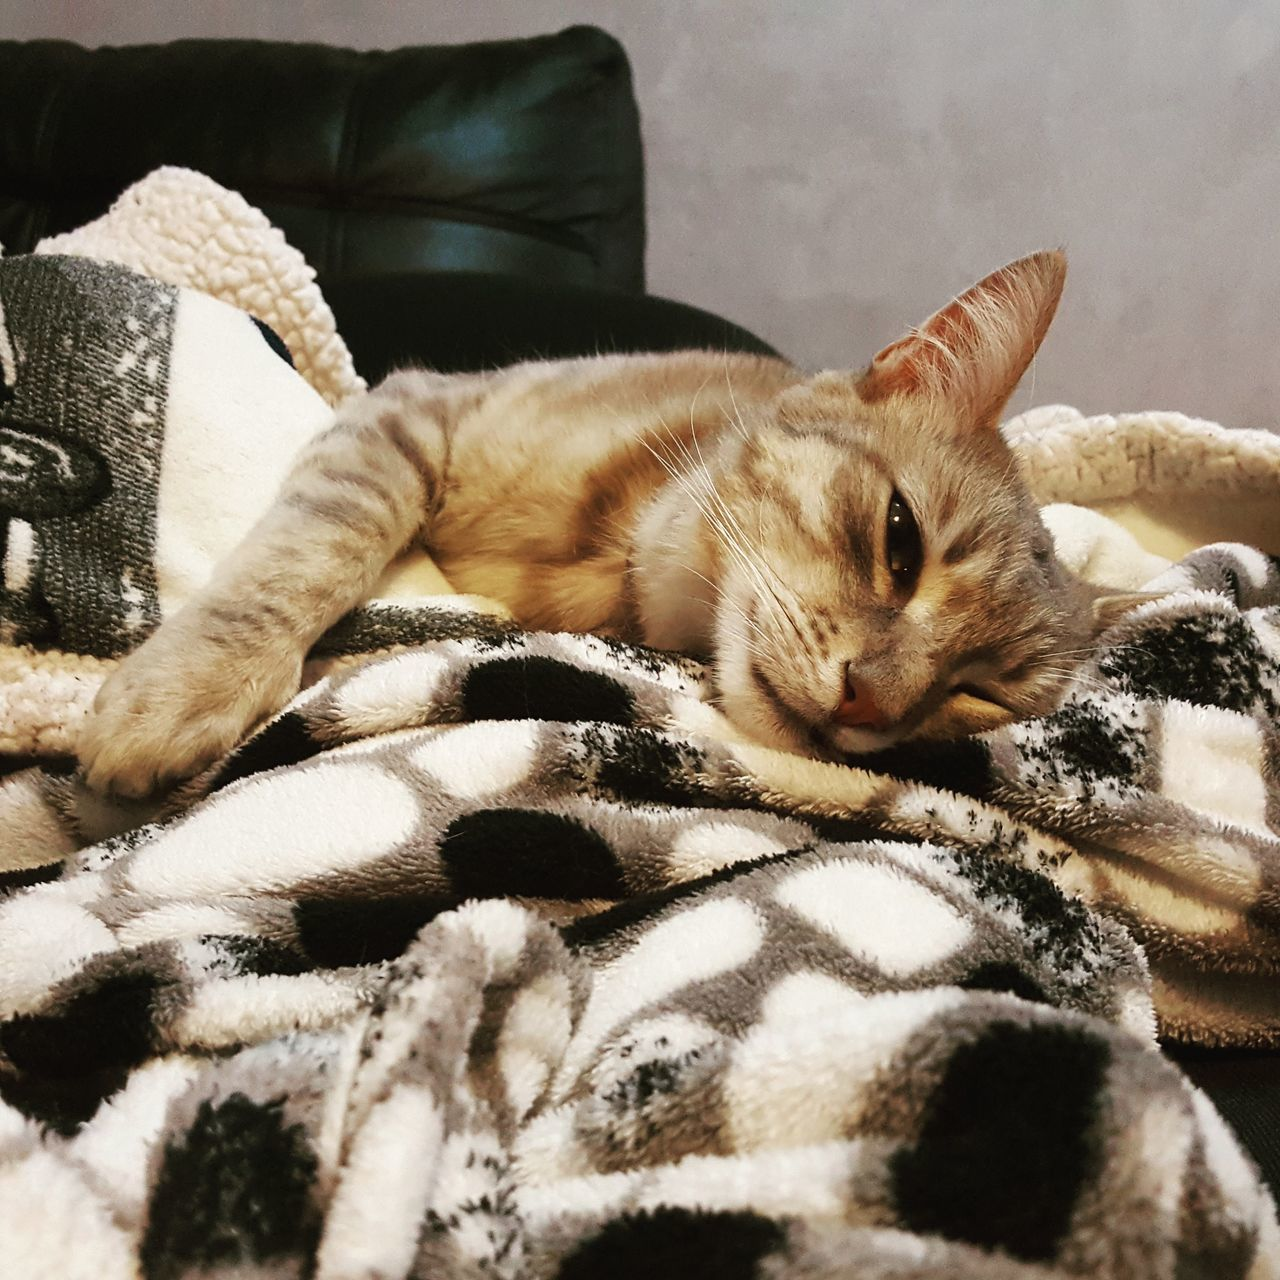 animal themes, one animal, relaxation, pets, mammal, domestic cat, domestic animals, indoors, resting, sleeping, home interior, lying down, sofa, feline, no people, comfortable, bed, close-up, day